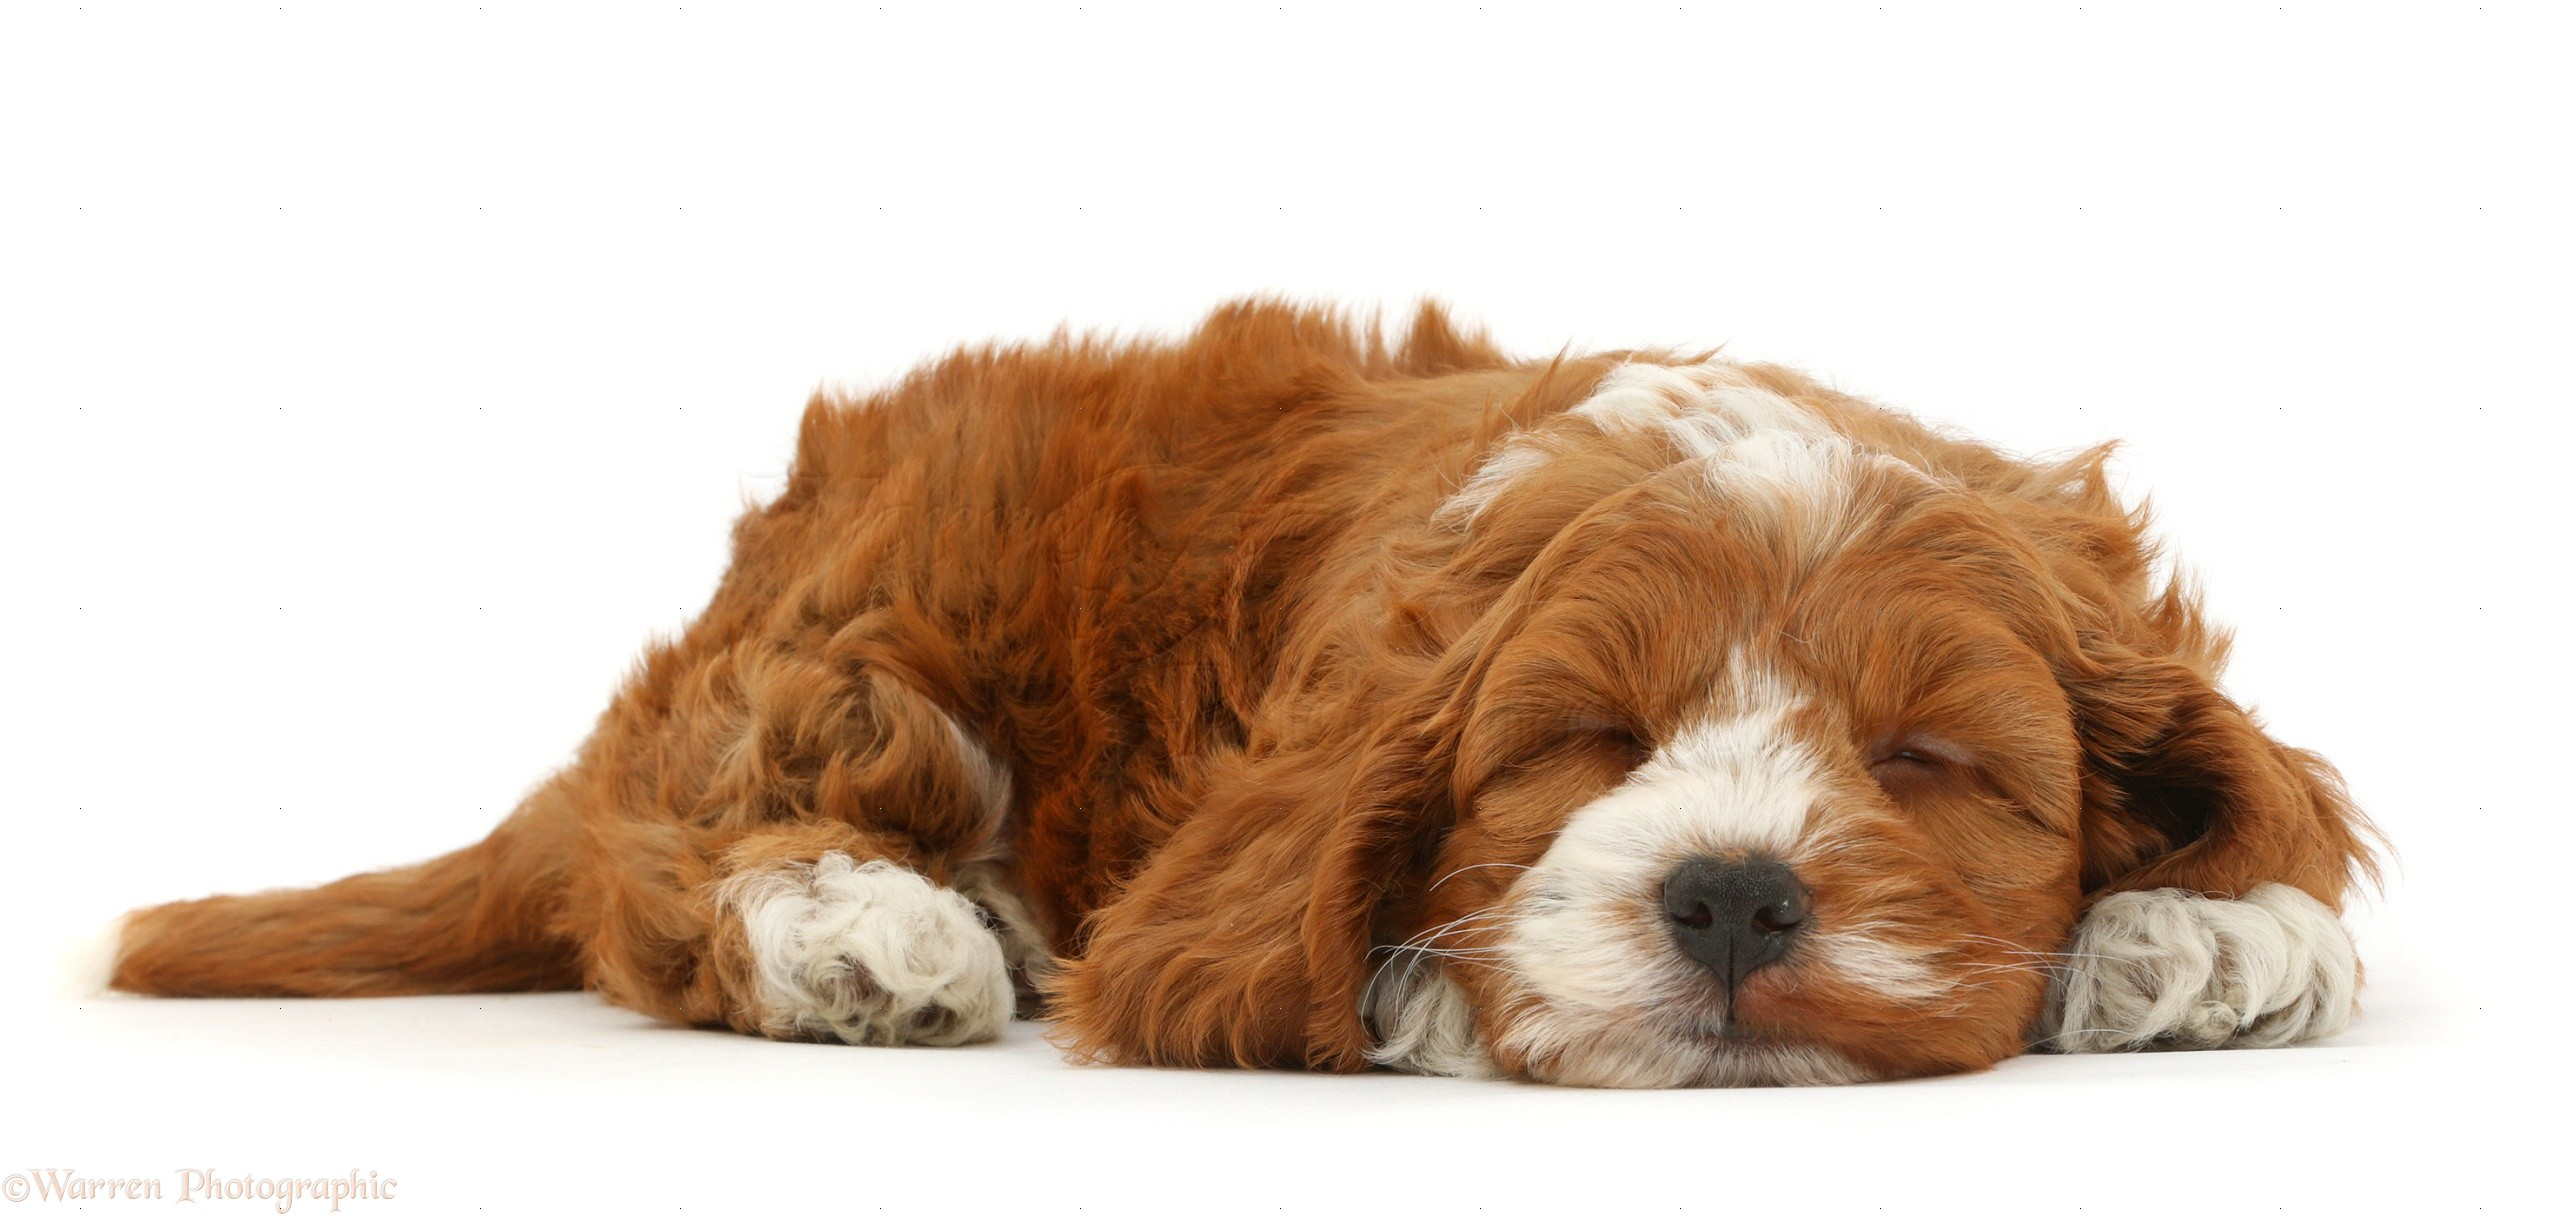 Sleeping Dog Images